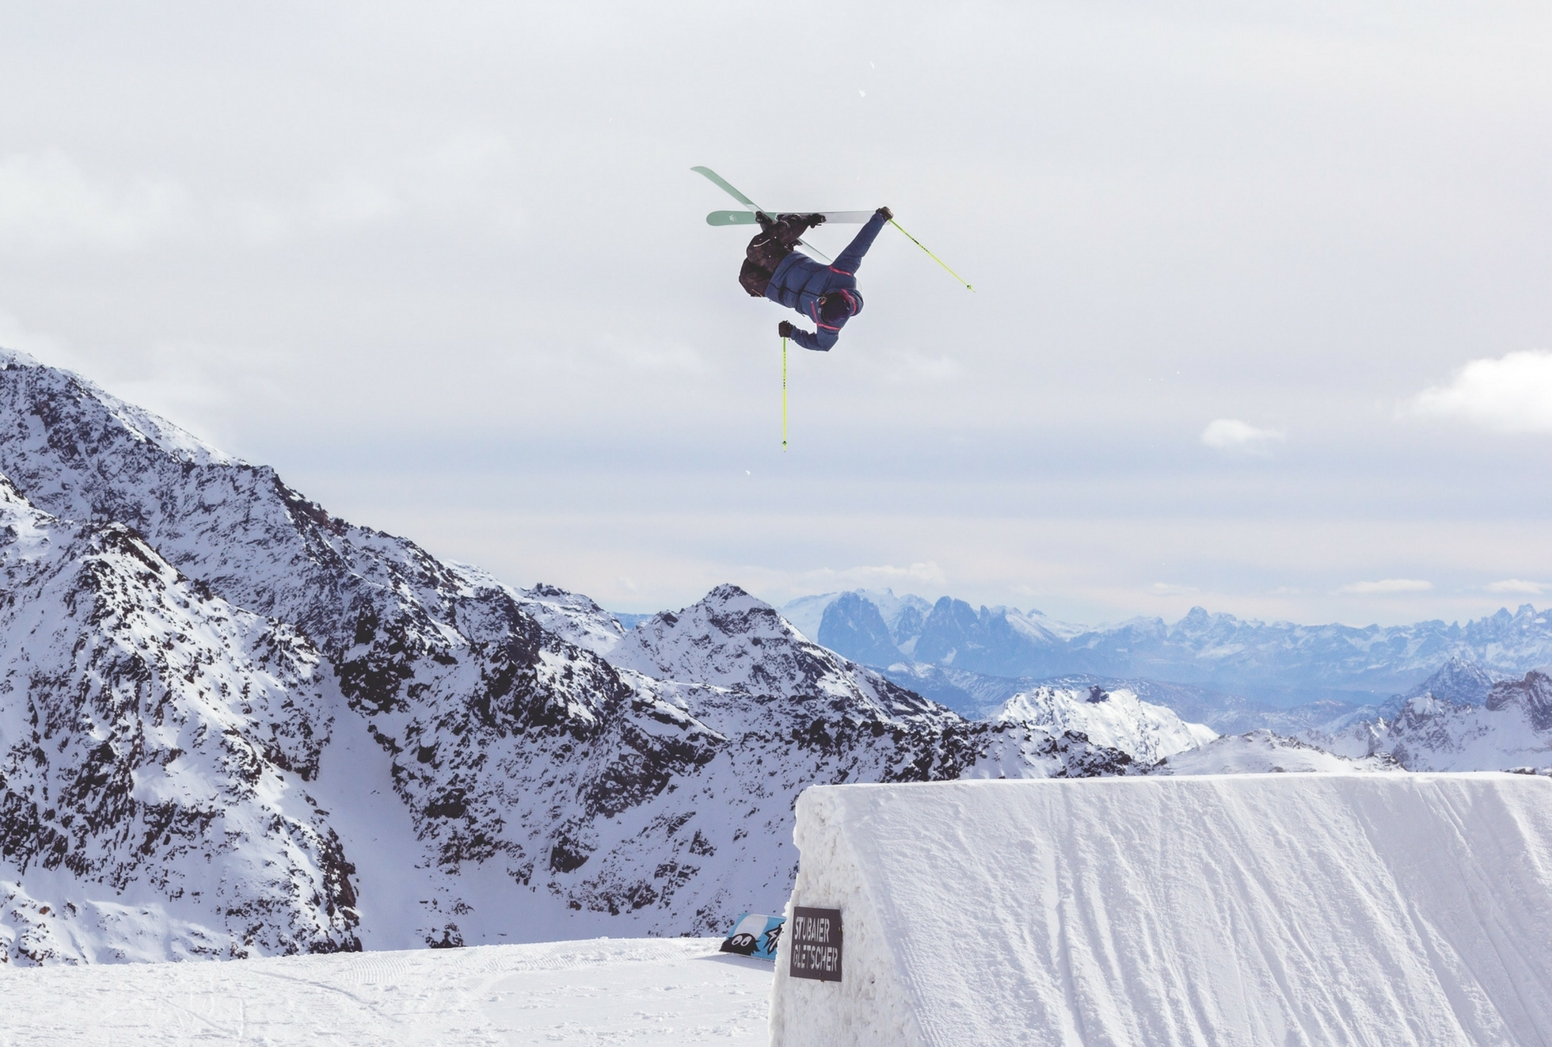 skier doing a backflip